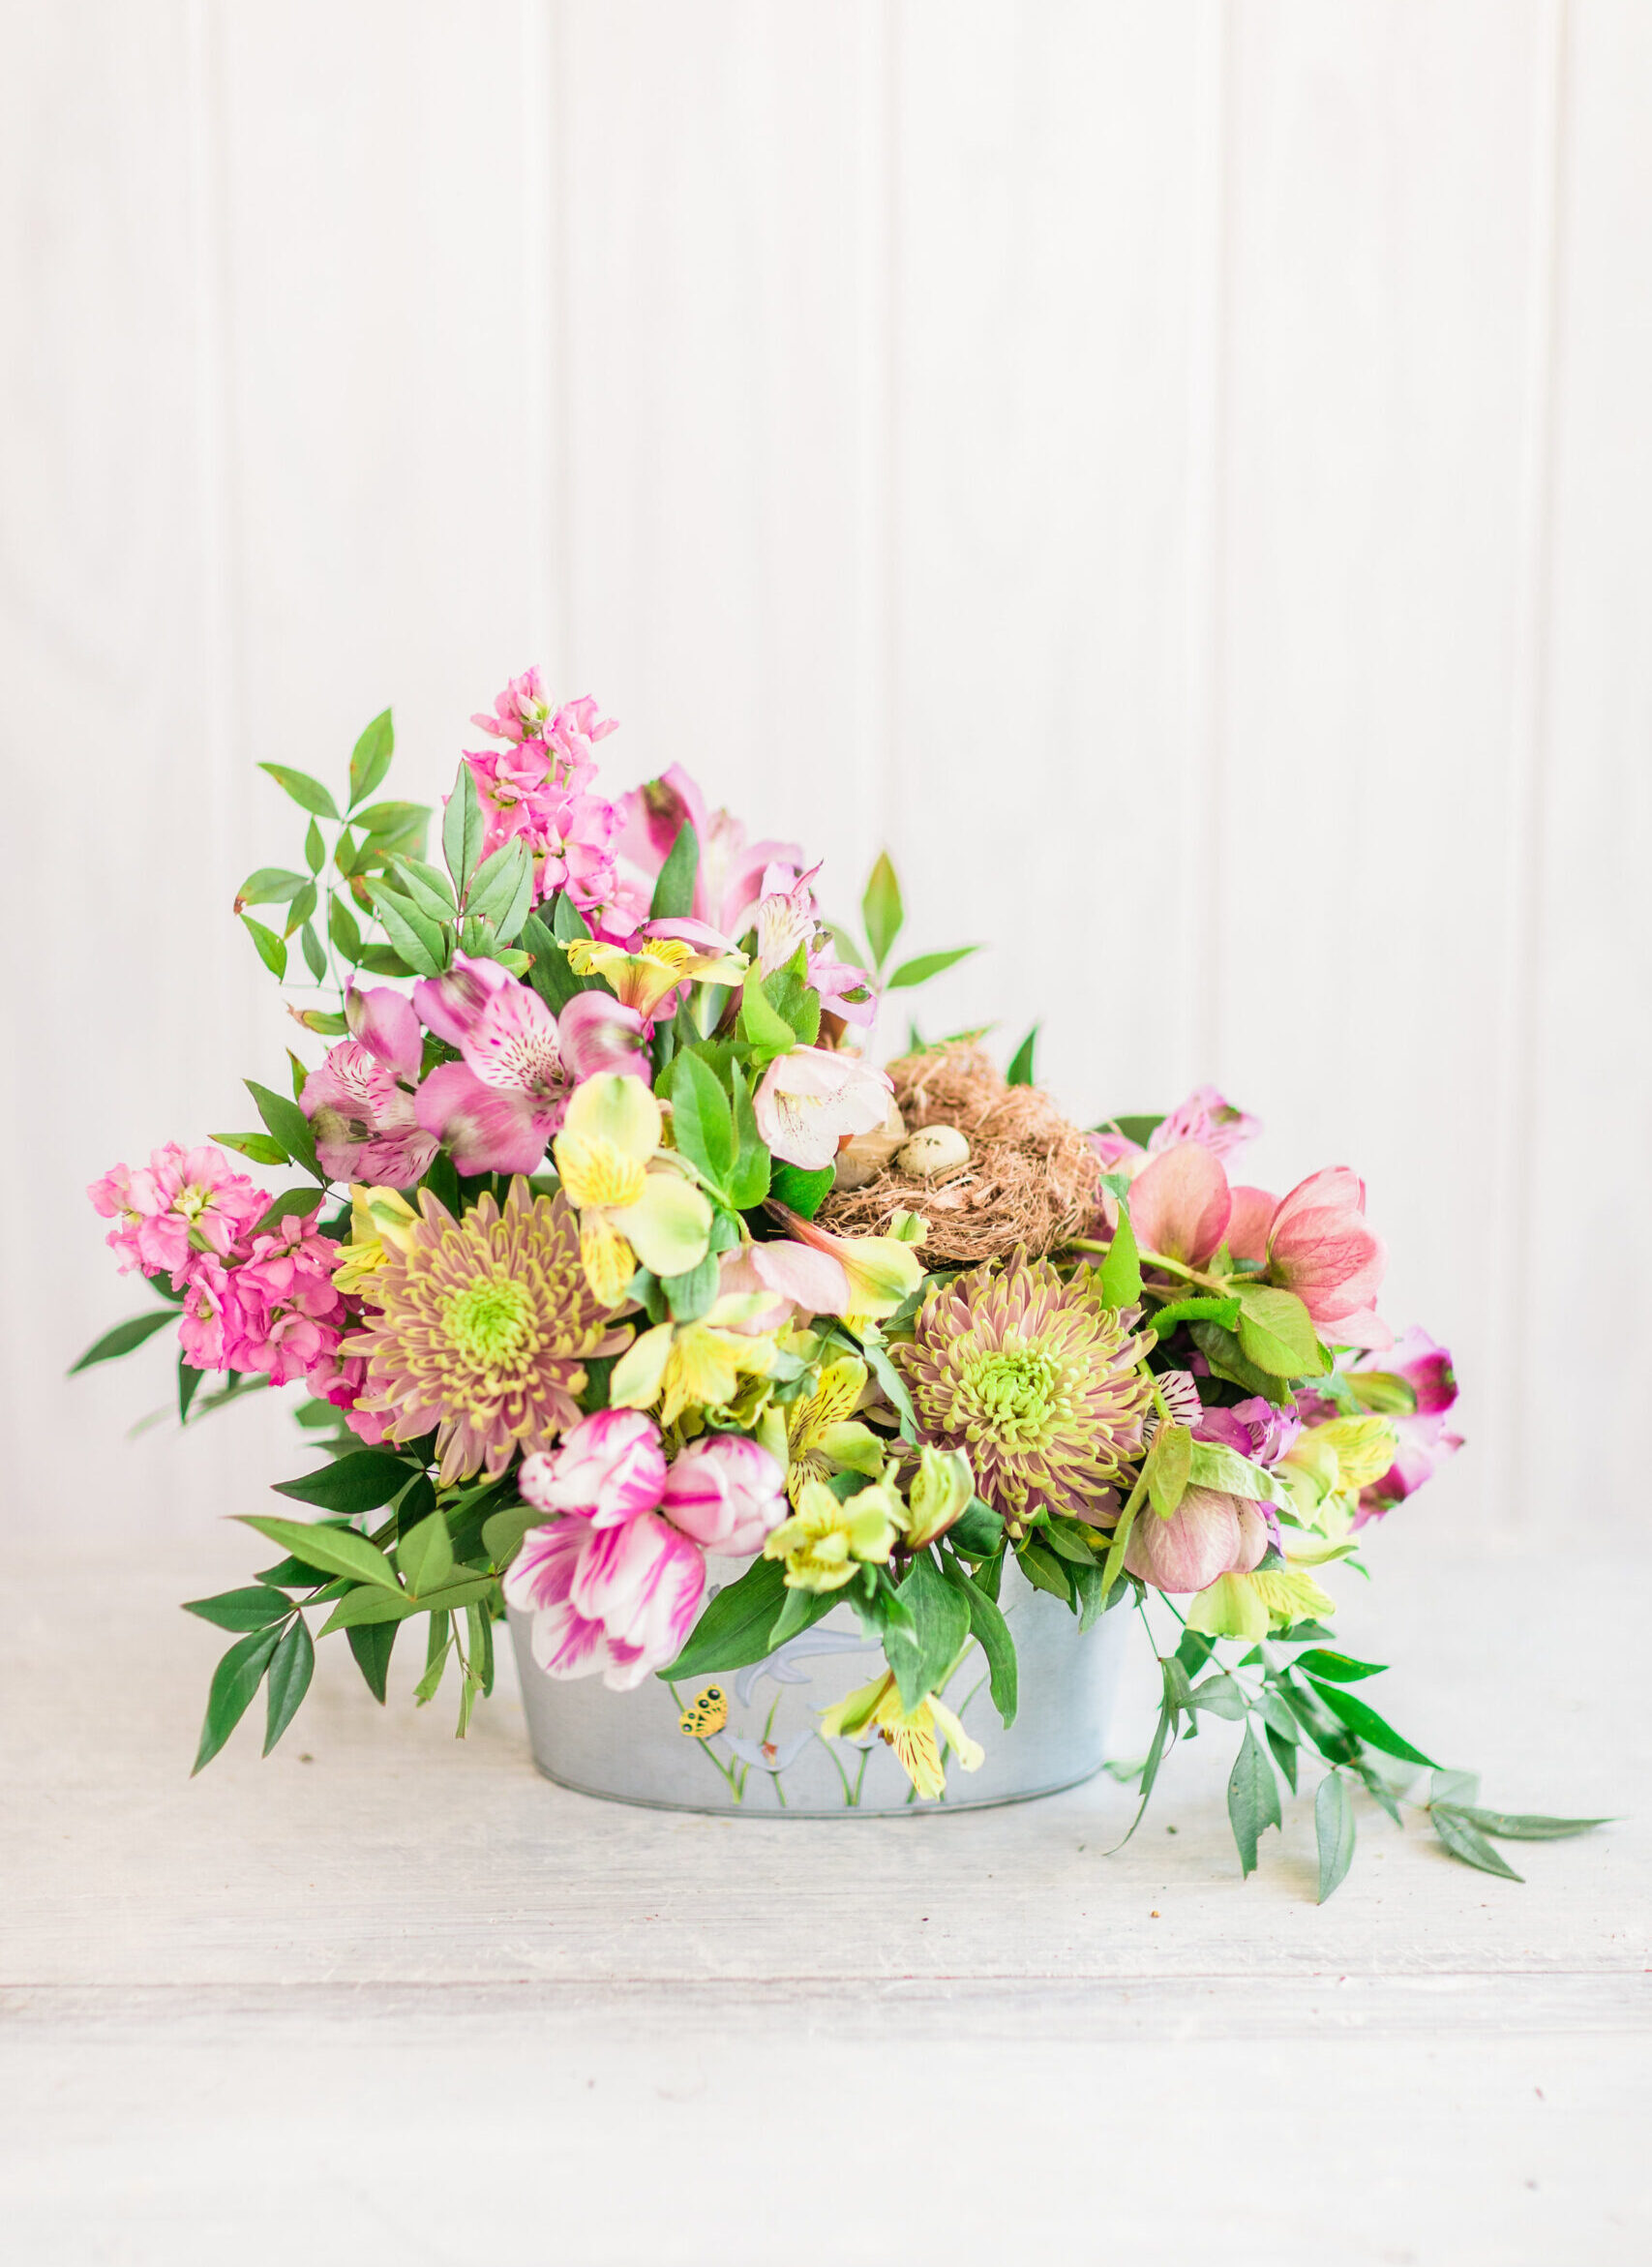 How to Make a Beautiful Spring Floral Arrangement for Easter